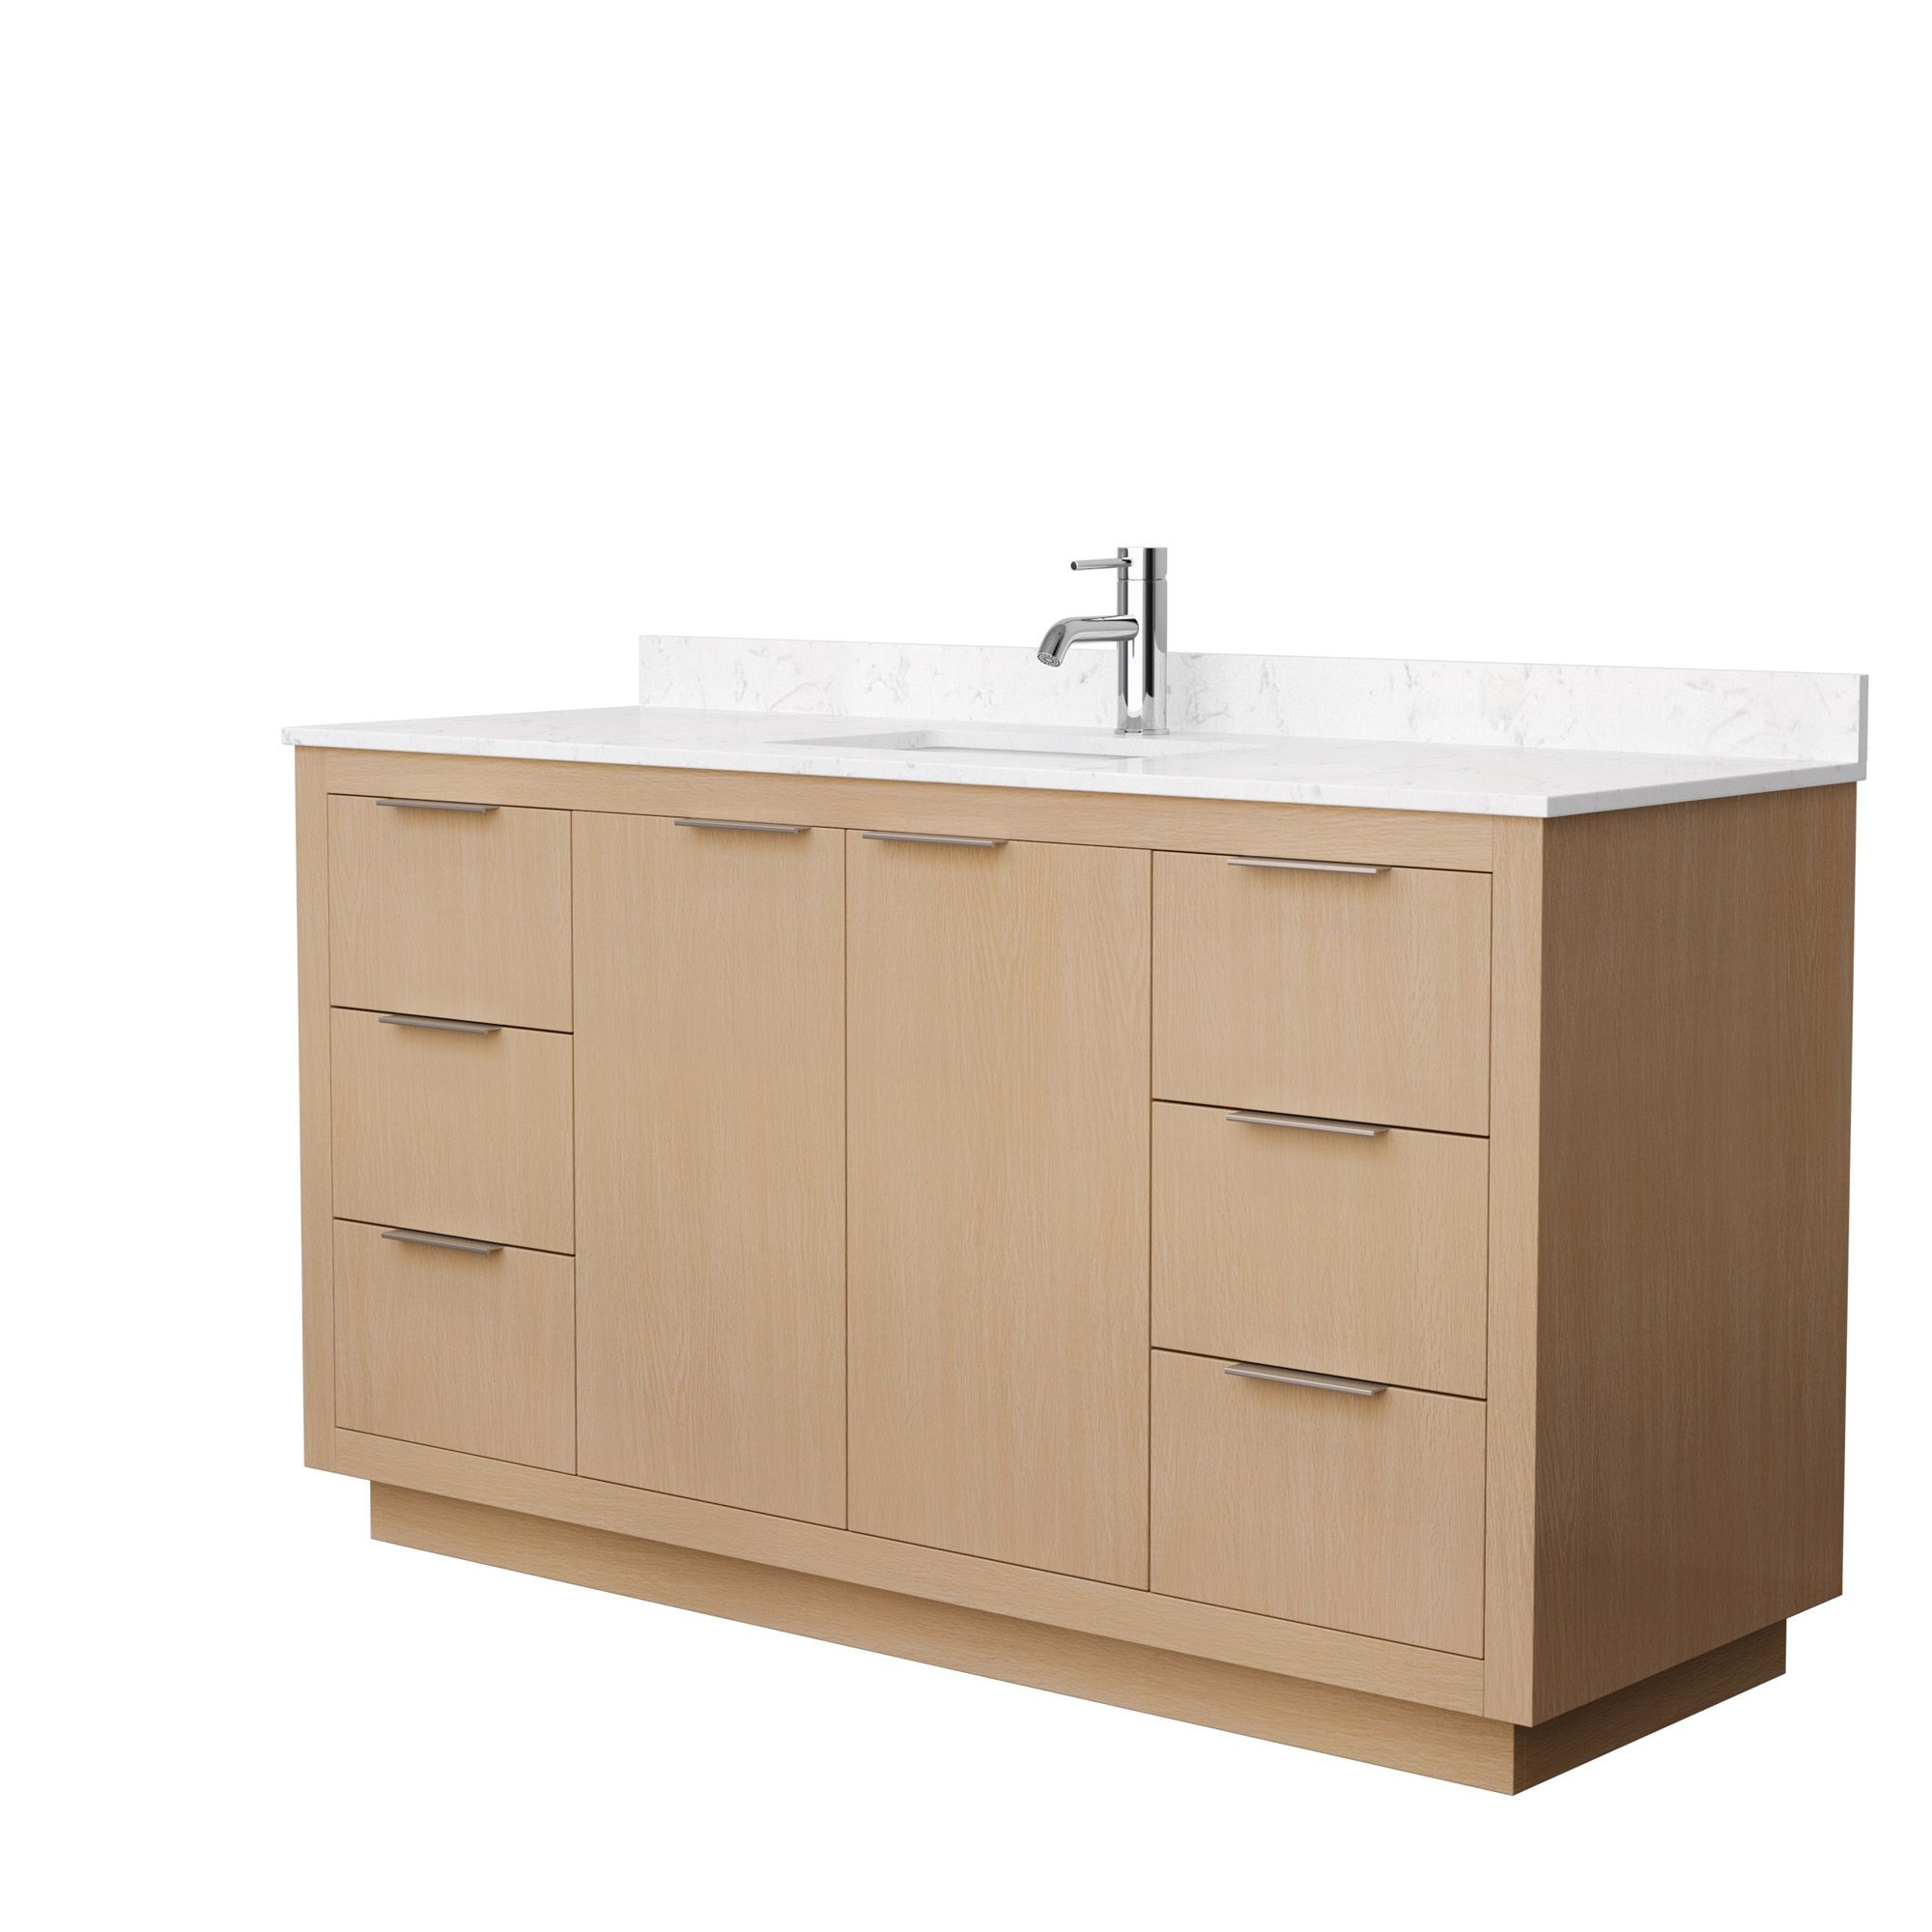 "60"" Single Bathroom Vanity in Light Straw with Countertop and Hardware Options"